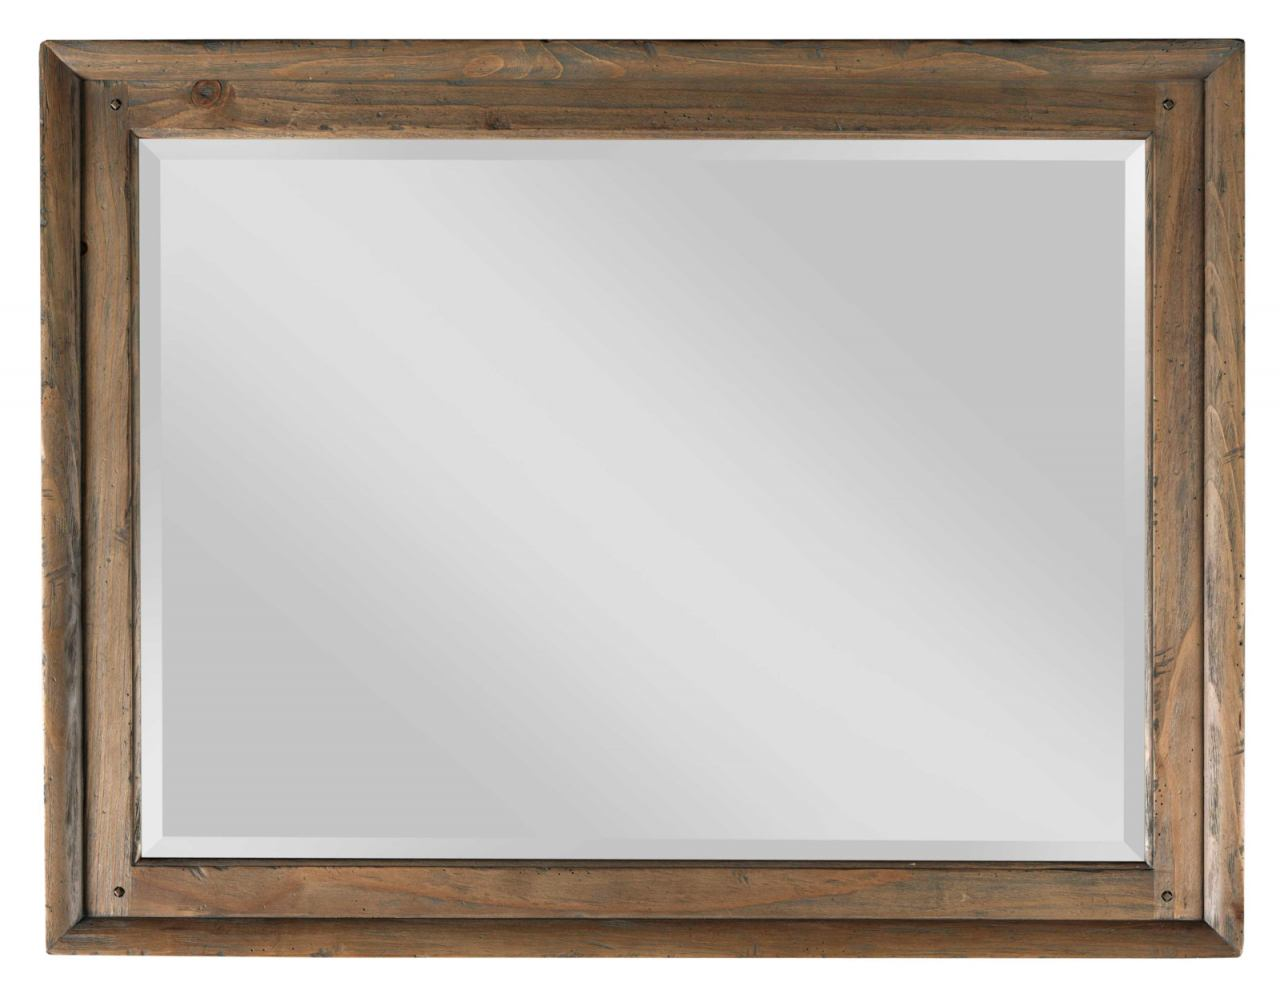 Kincaid Weatherford Landscape Mirror in Grey Heather 76-114